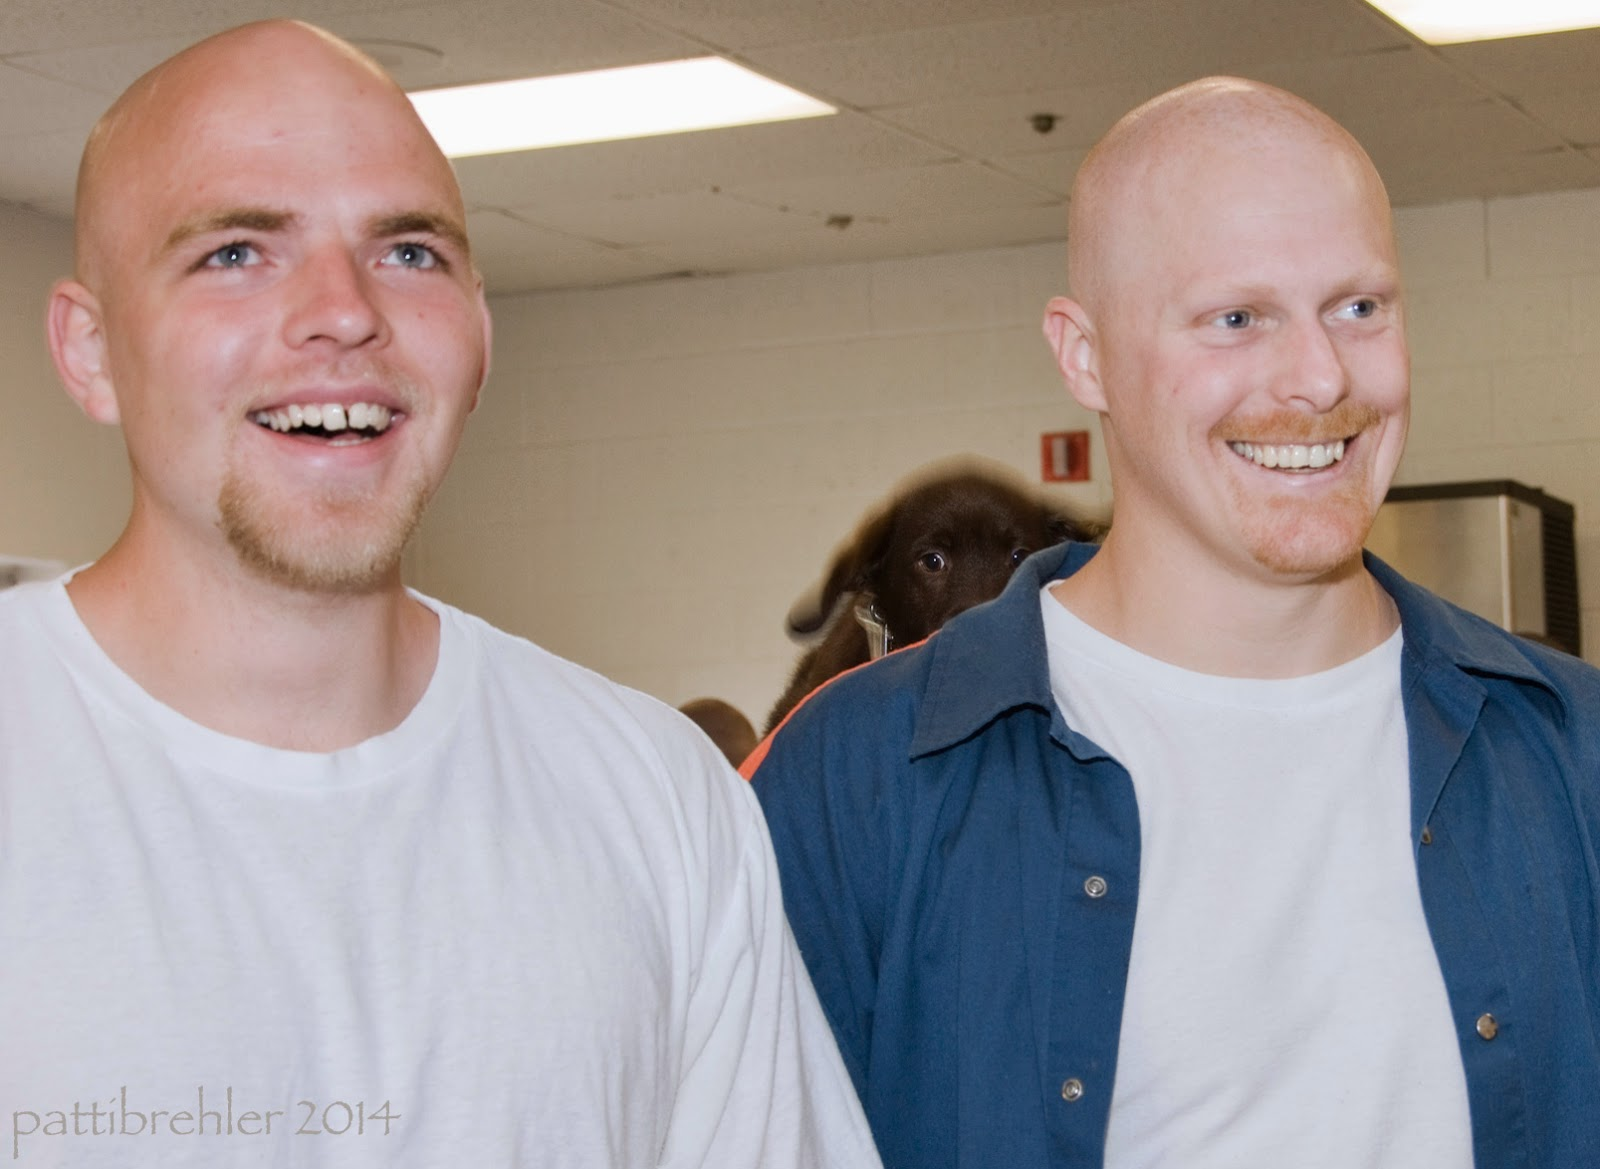 Two smiling bald men face the camera, each are wearing a white t-shirt, but the man on the right has an open blue shirt over the t-shirt. Just over the right shoulder of the man on the right is the small brown head of a chocolate lab puppy.